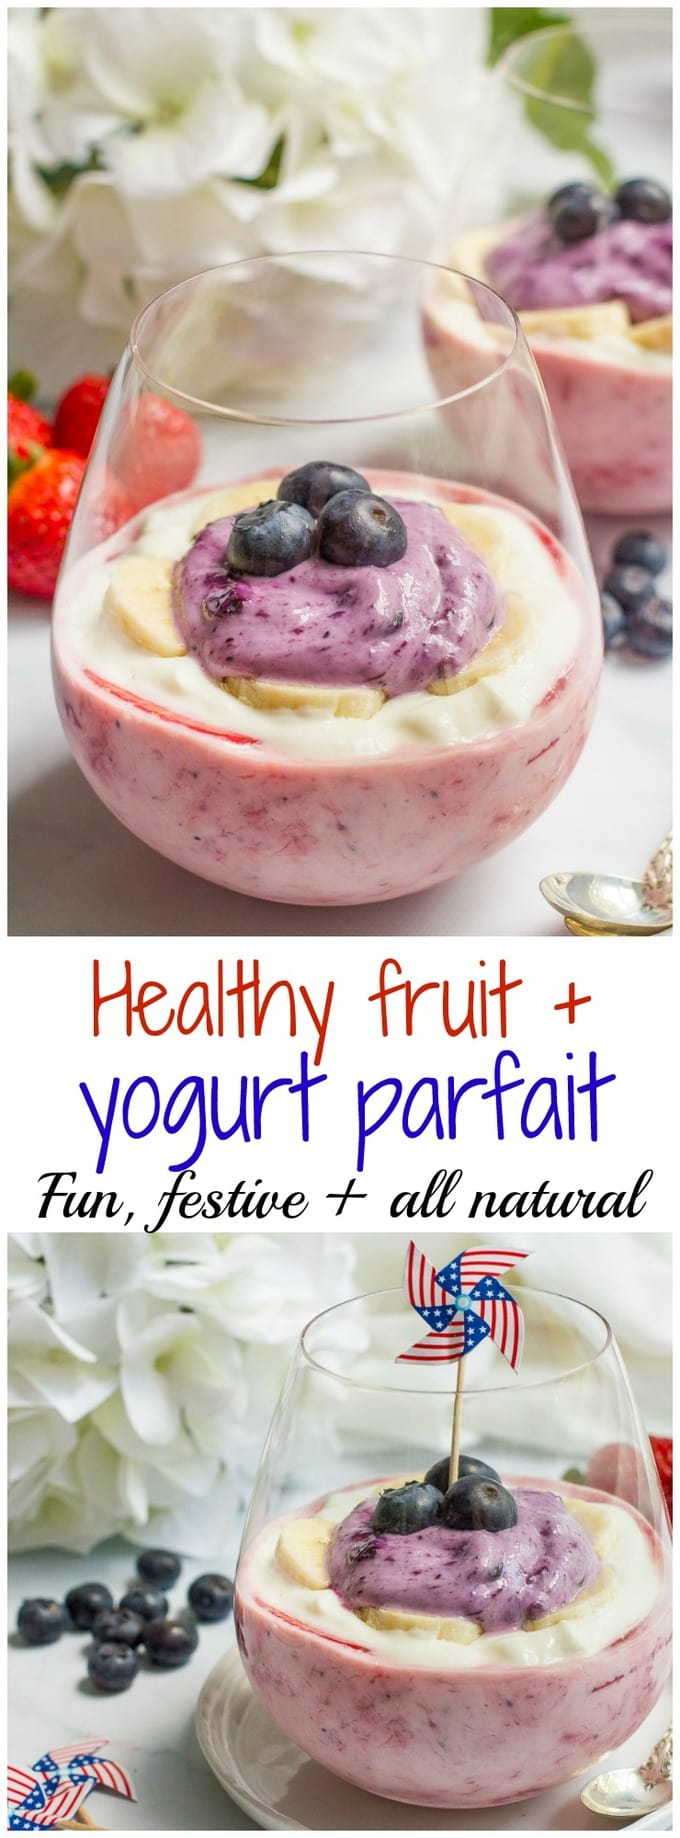 Healthy yogurt parfaits with a red, white and blue layer for a fun and festive July 4th breakfast or snack!